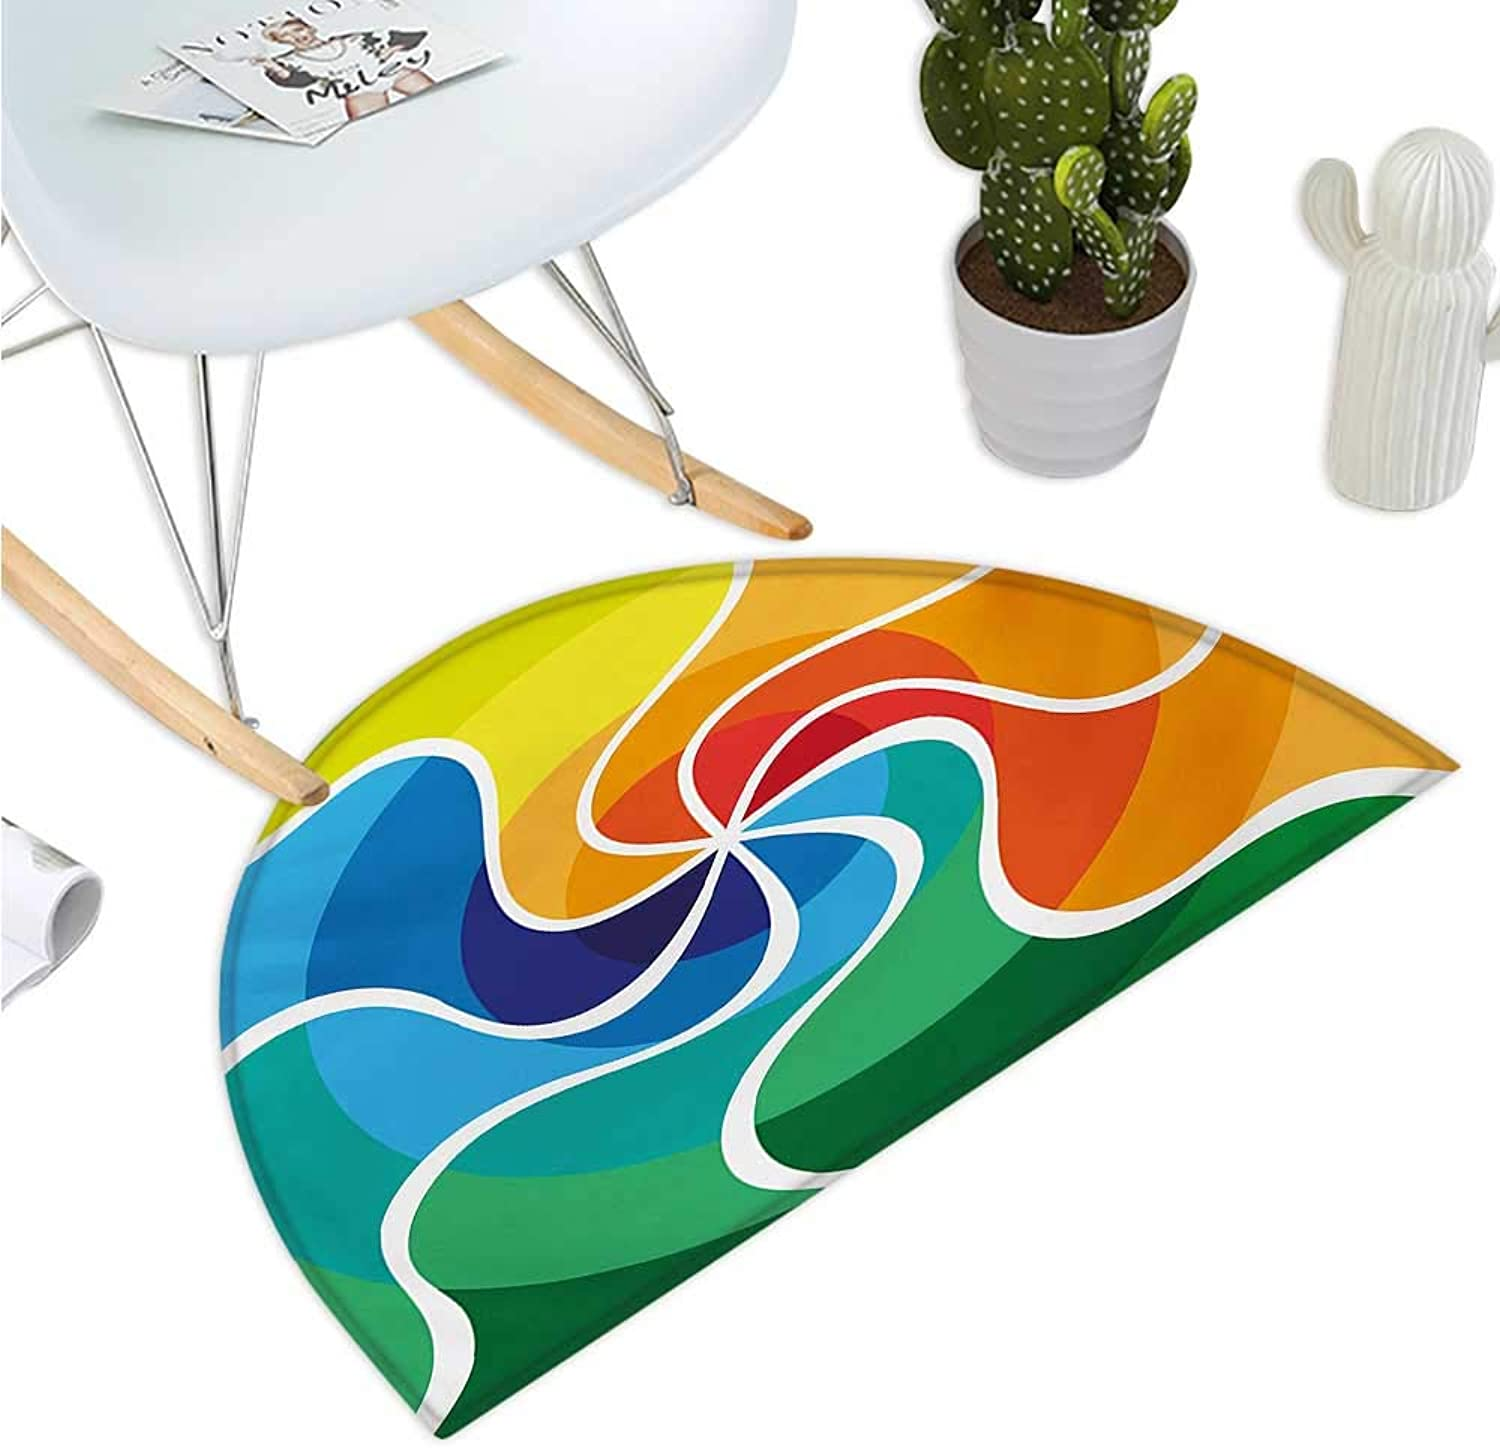 Psychedelic Semicircular Cushion Rainbow colord Spiral Gradient Wind pink Psychedelic Display Surreal Artisan Entry Door Mat H 39.3  xD 59  Multicolor